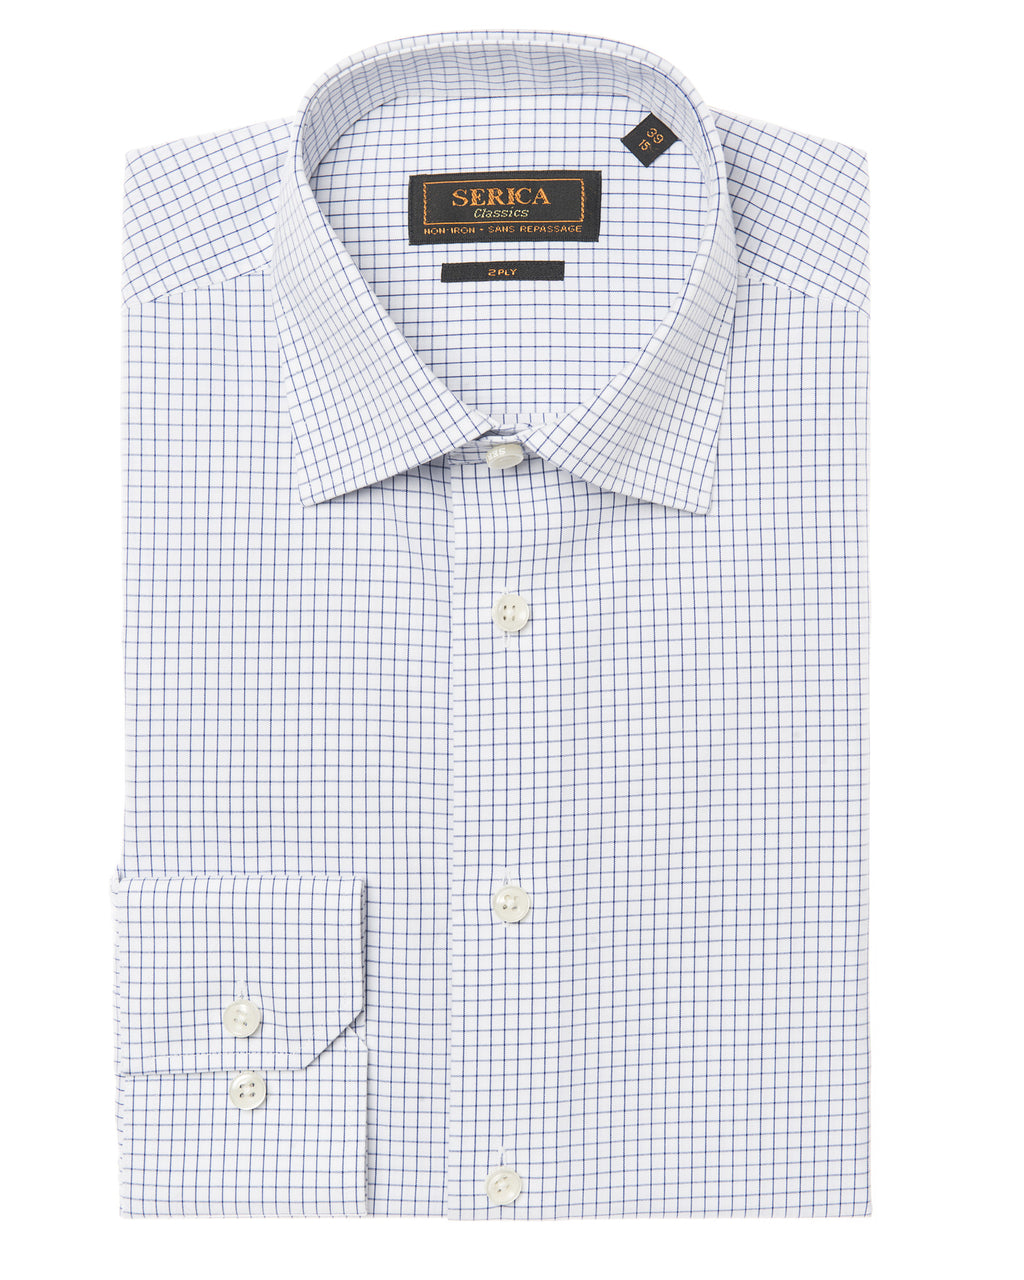 Dress shirt with navy check pattern by SERICA. Non-iron & wrinkle free.